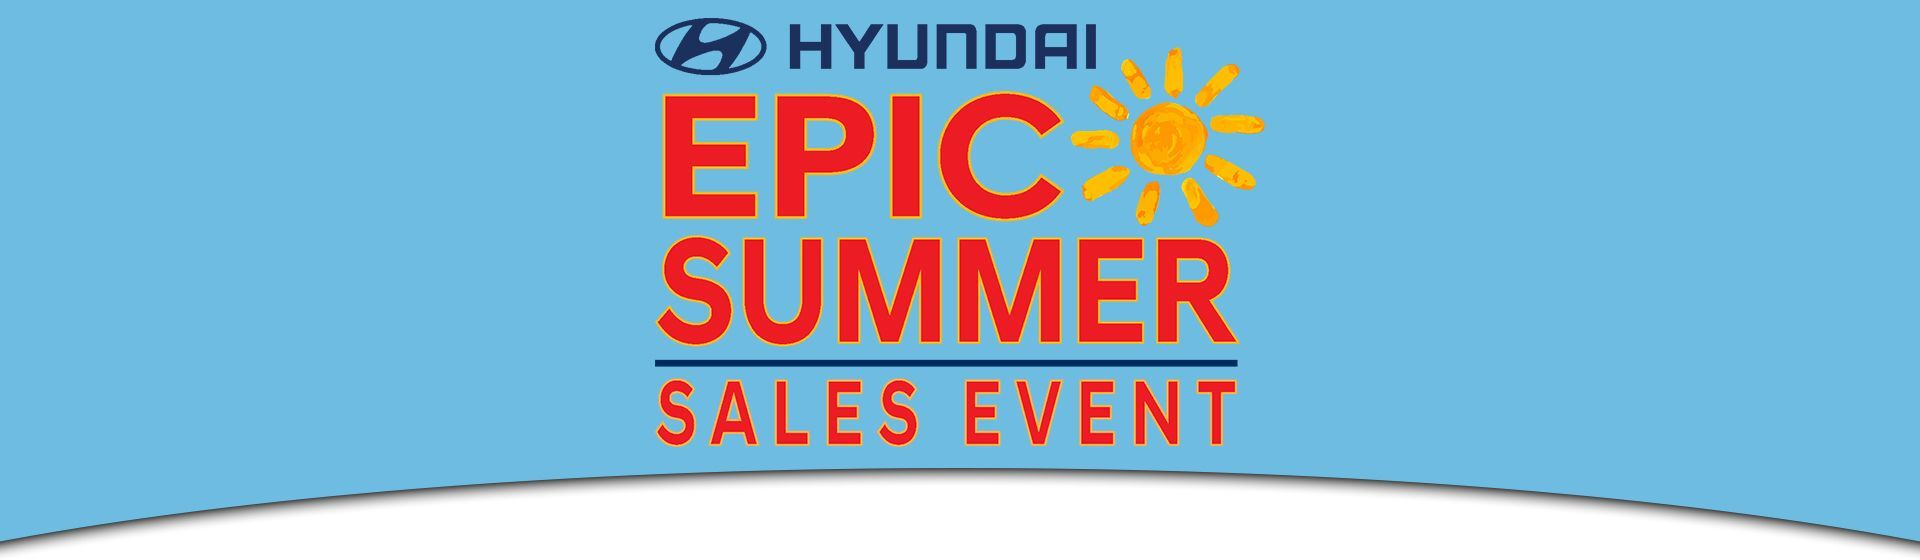 Epic Sumer Sales Event